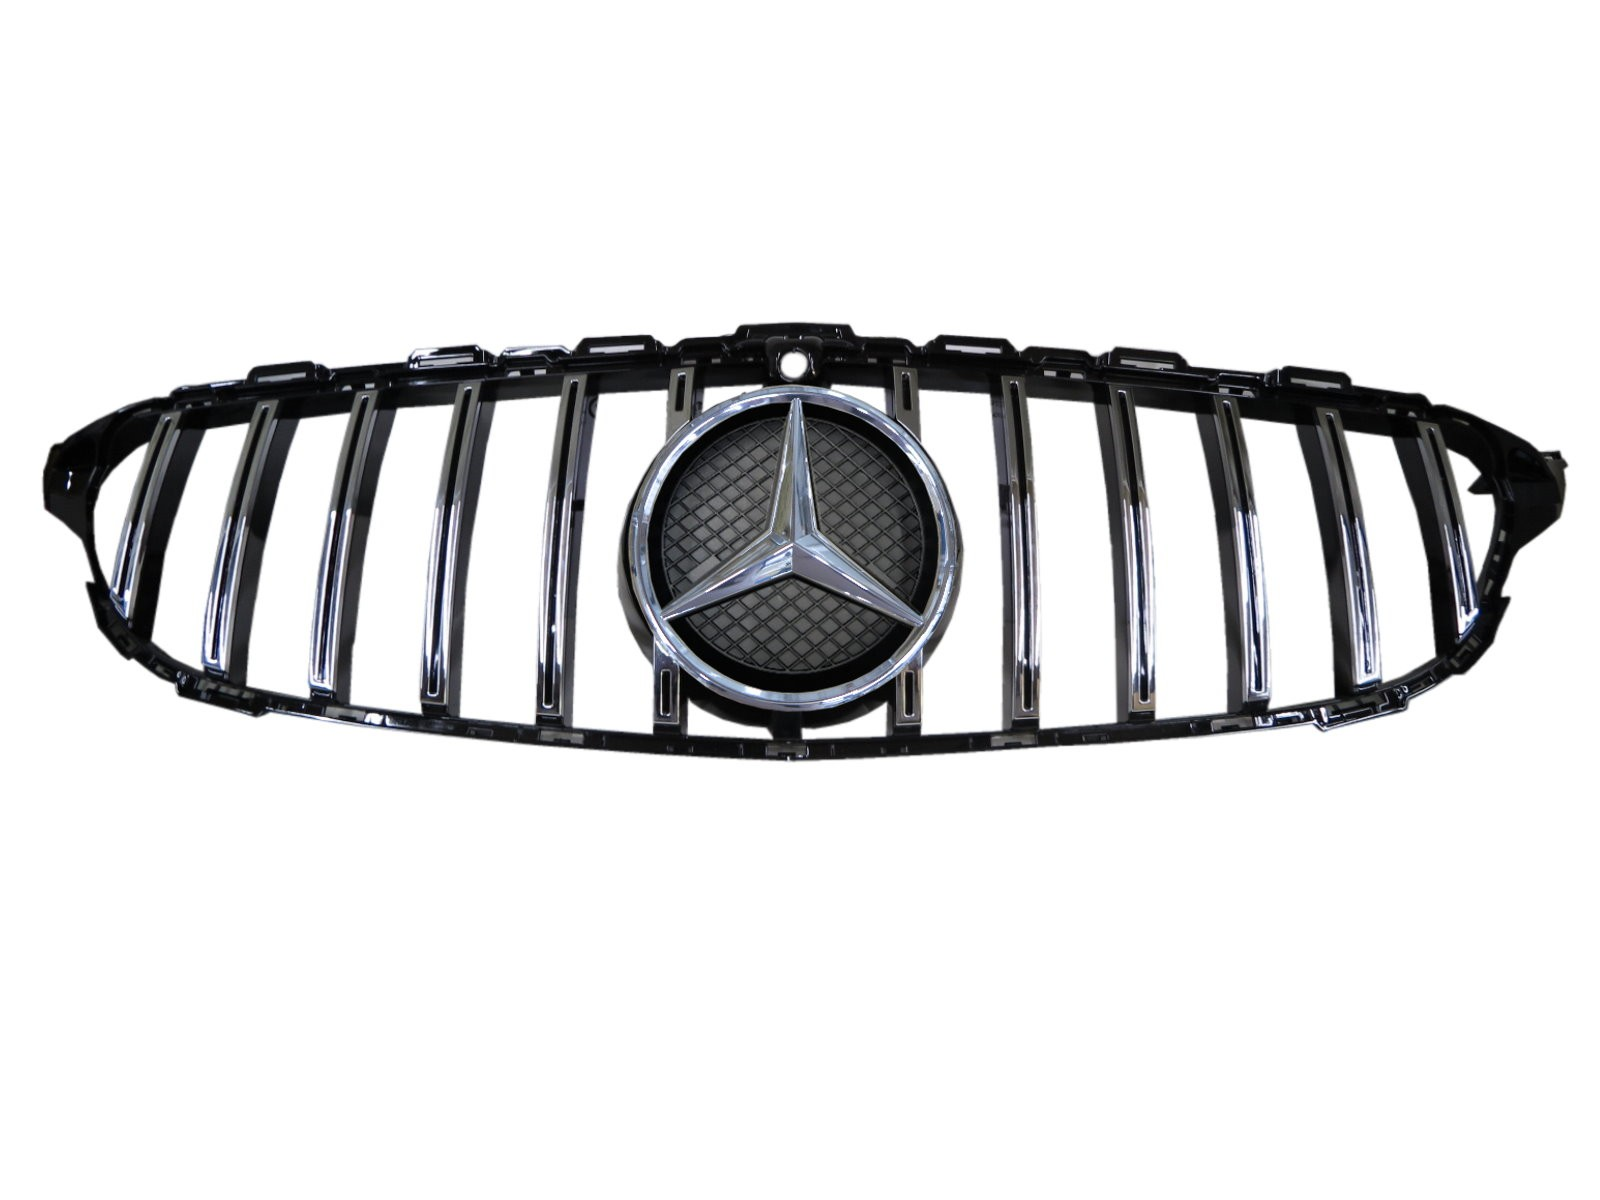 CrazyTheGod C-CLASS W205 2014-2018 Pre-Facelift Sedan 4D Star Emblem W/ Camera Hole GRILLE/GRILL Chrome for Mercedes-Benz